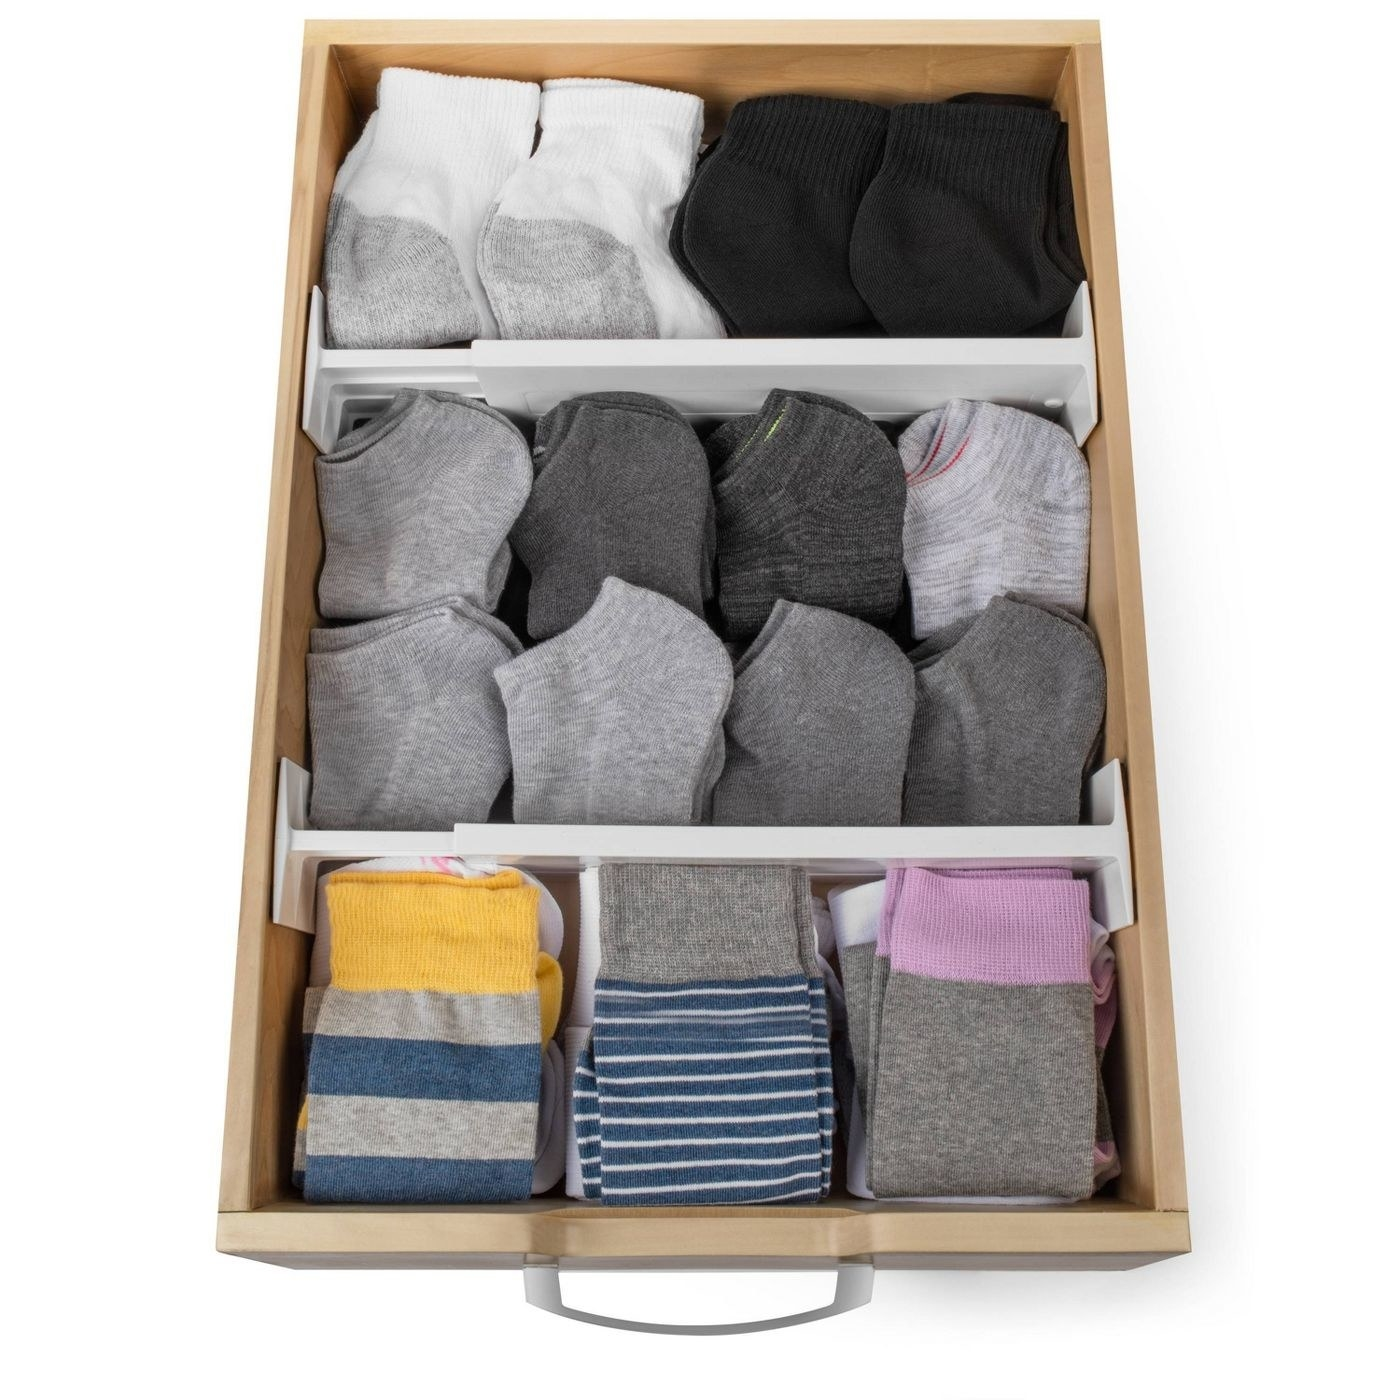 a top view of a drawer with two drawer organizers in them